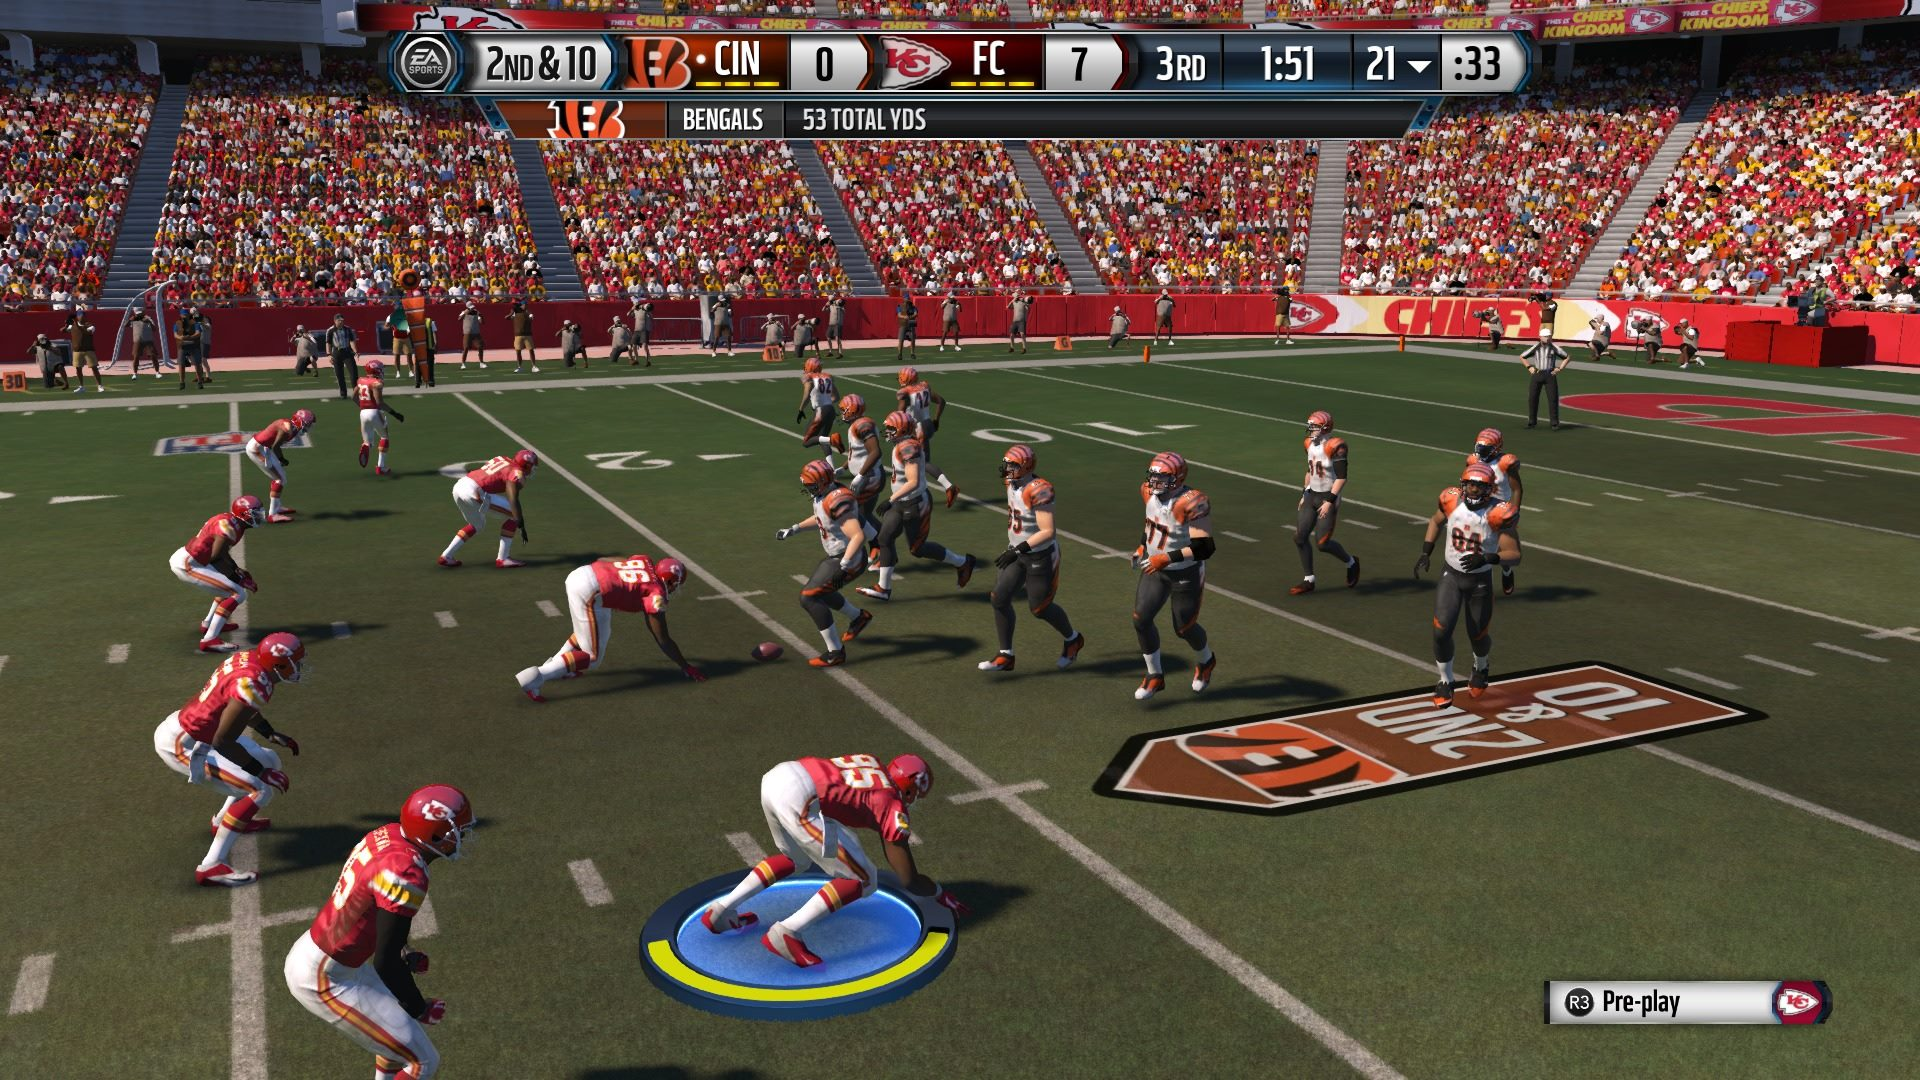 This is the new default defensive camera angle which is immersive, but not too practical.